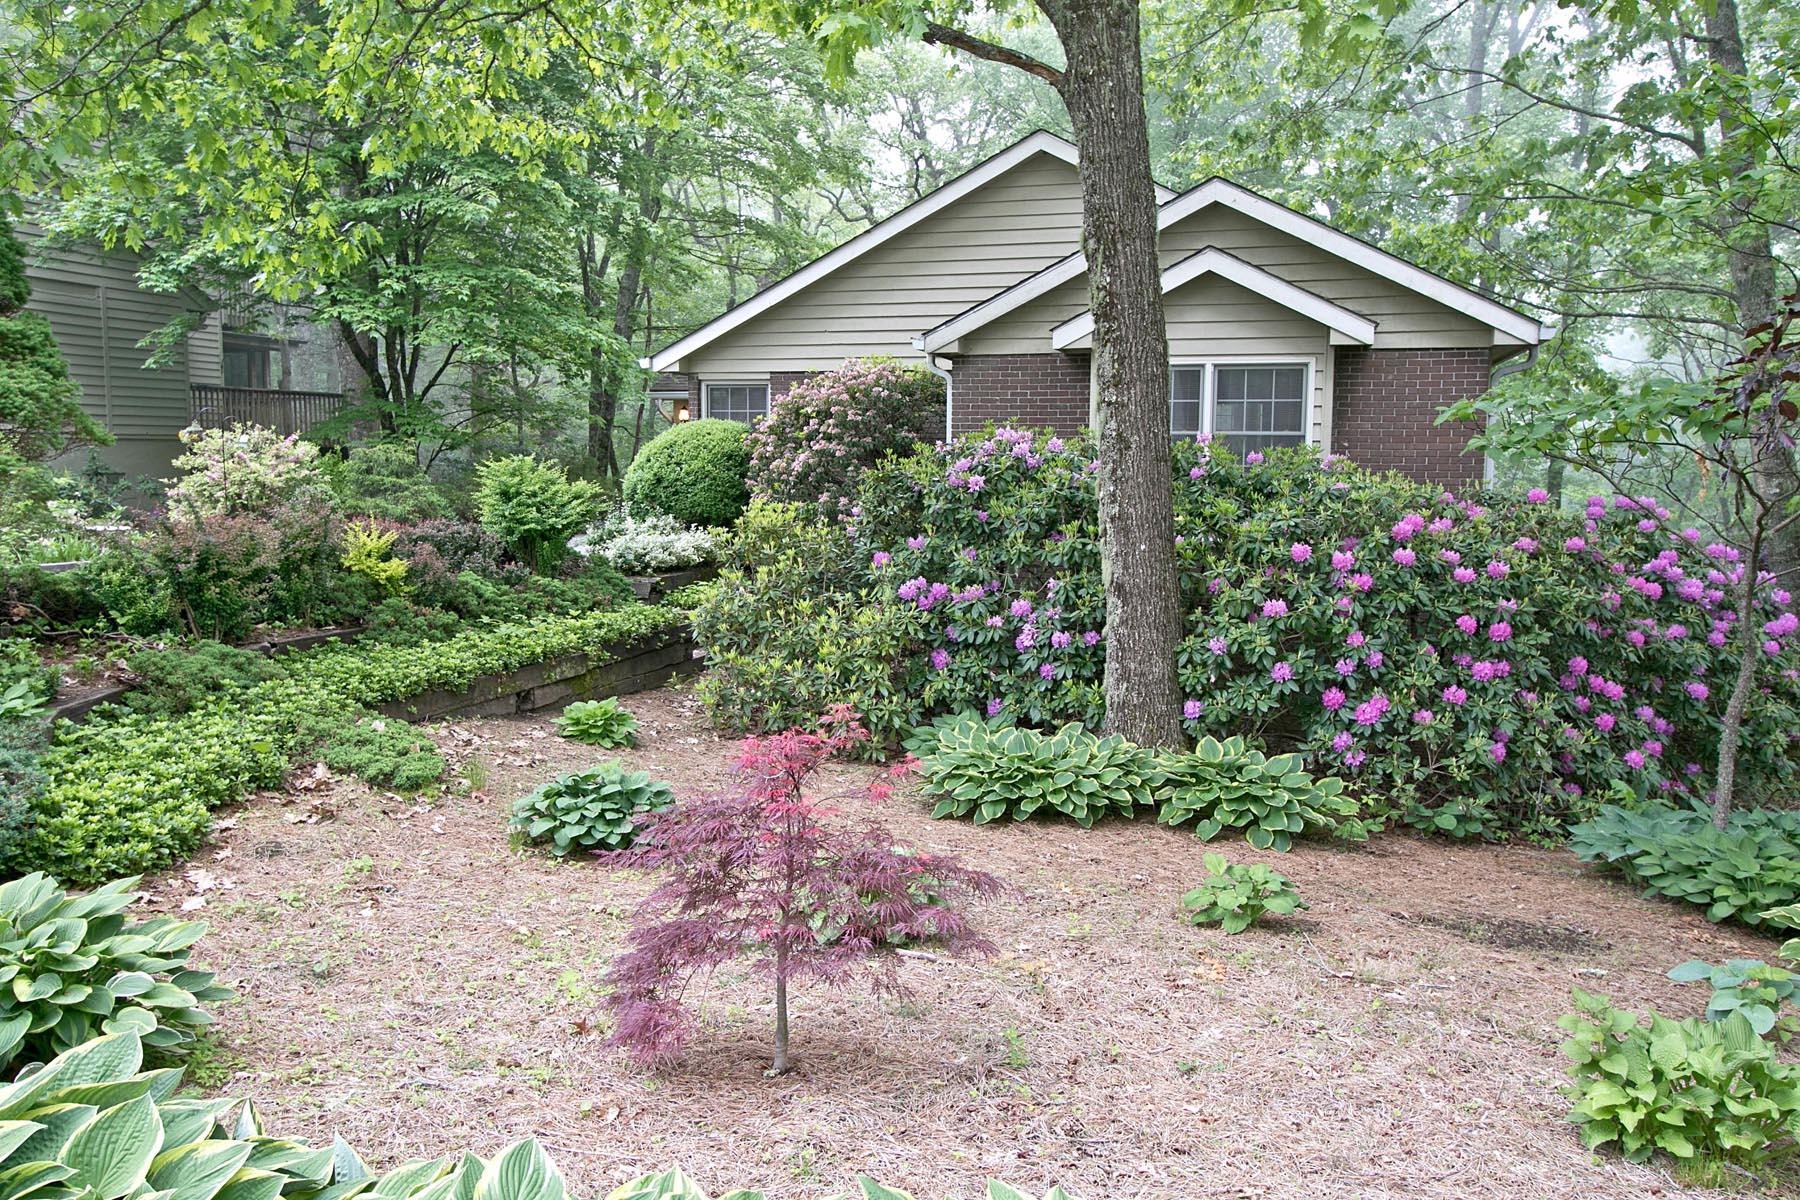 Single Family Home for Sale at 228 Shelby Circle Highlands, North Carolina, 28741 United States